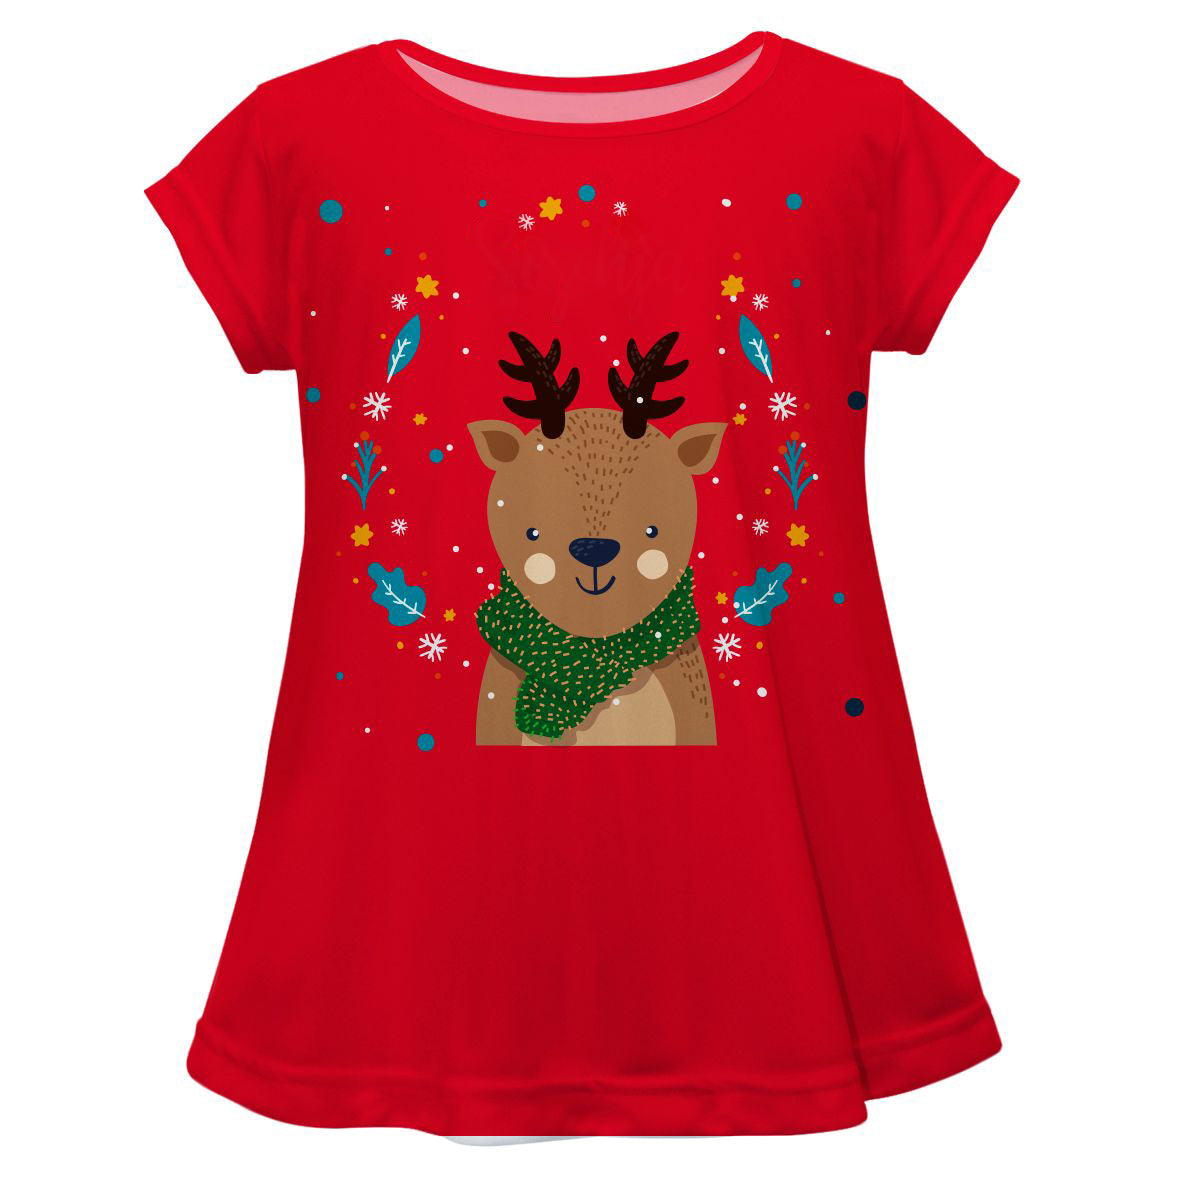 Reindeers Name Red Short Sleeve Laurie Top - Wimziy&Co.